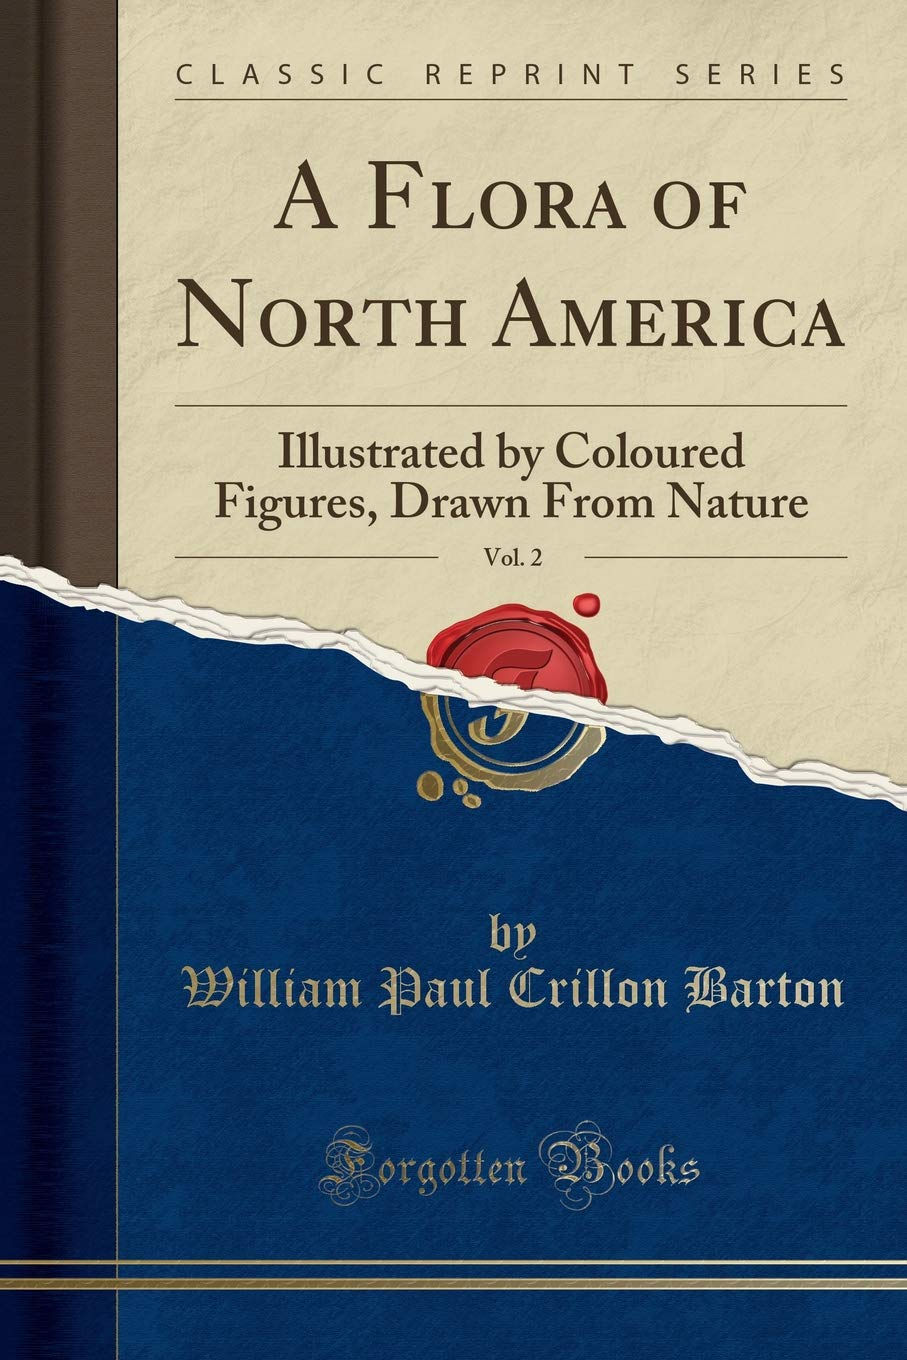 A Flora of North America, Vol. 2: Illustrated by Coloured Figures, Drawn From Nature (Classic Reprint) pdf epub